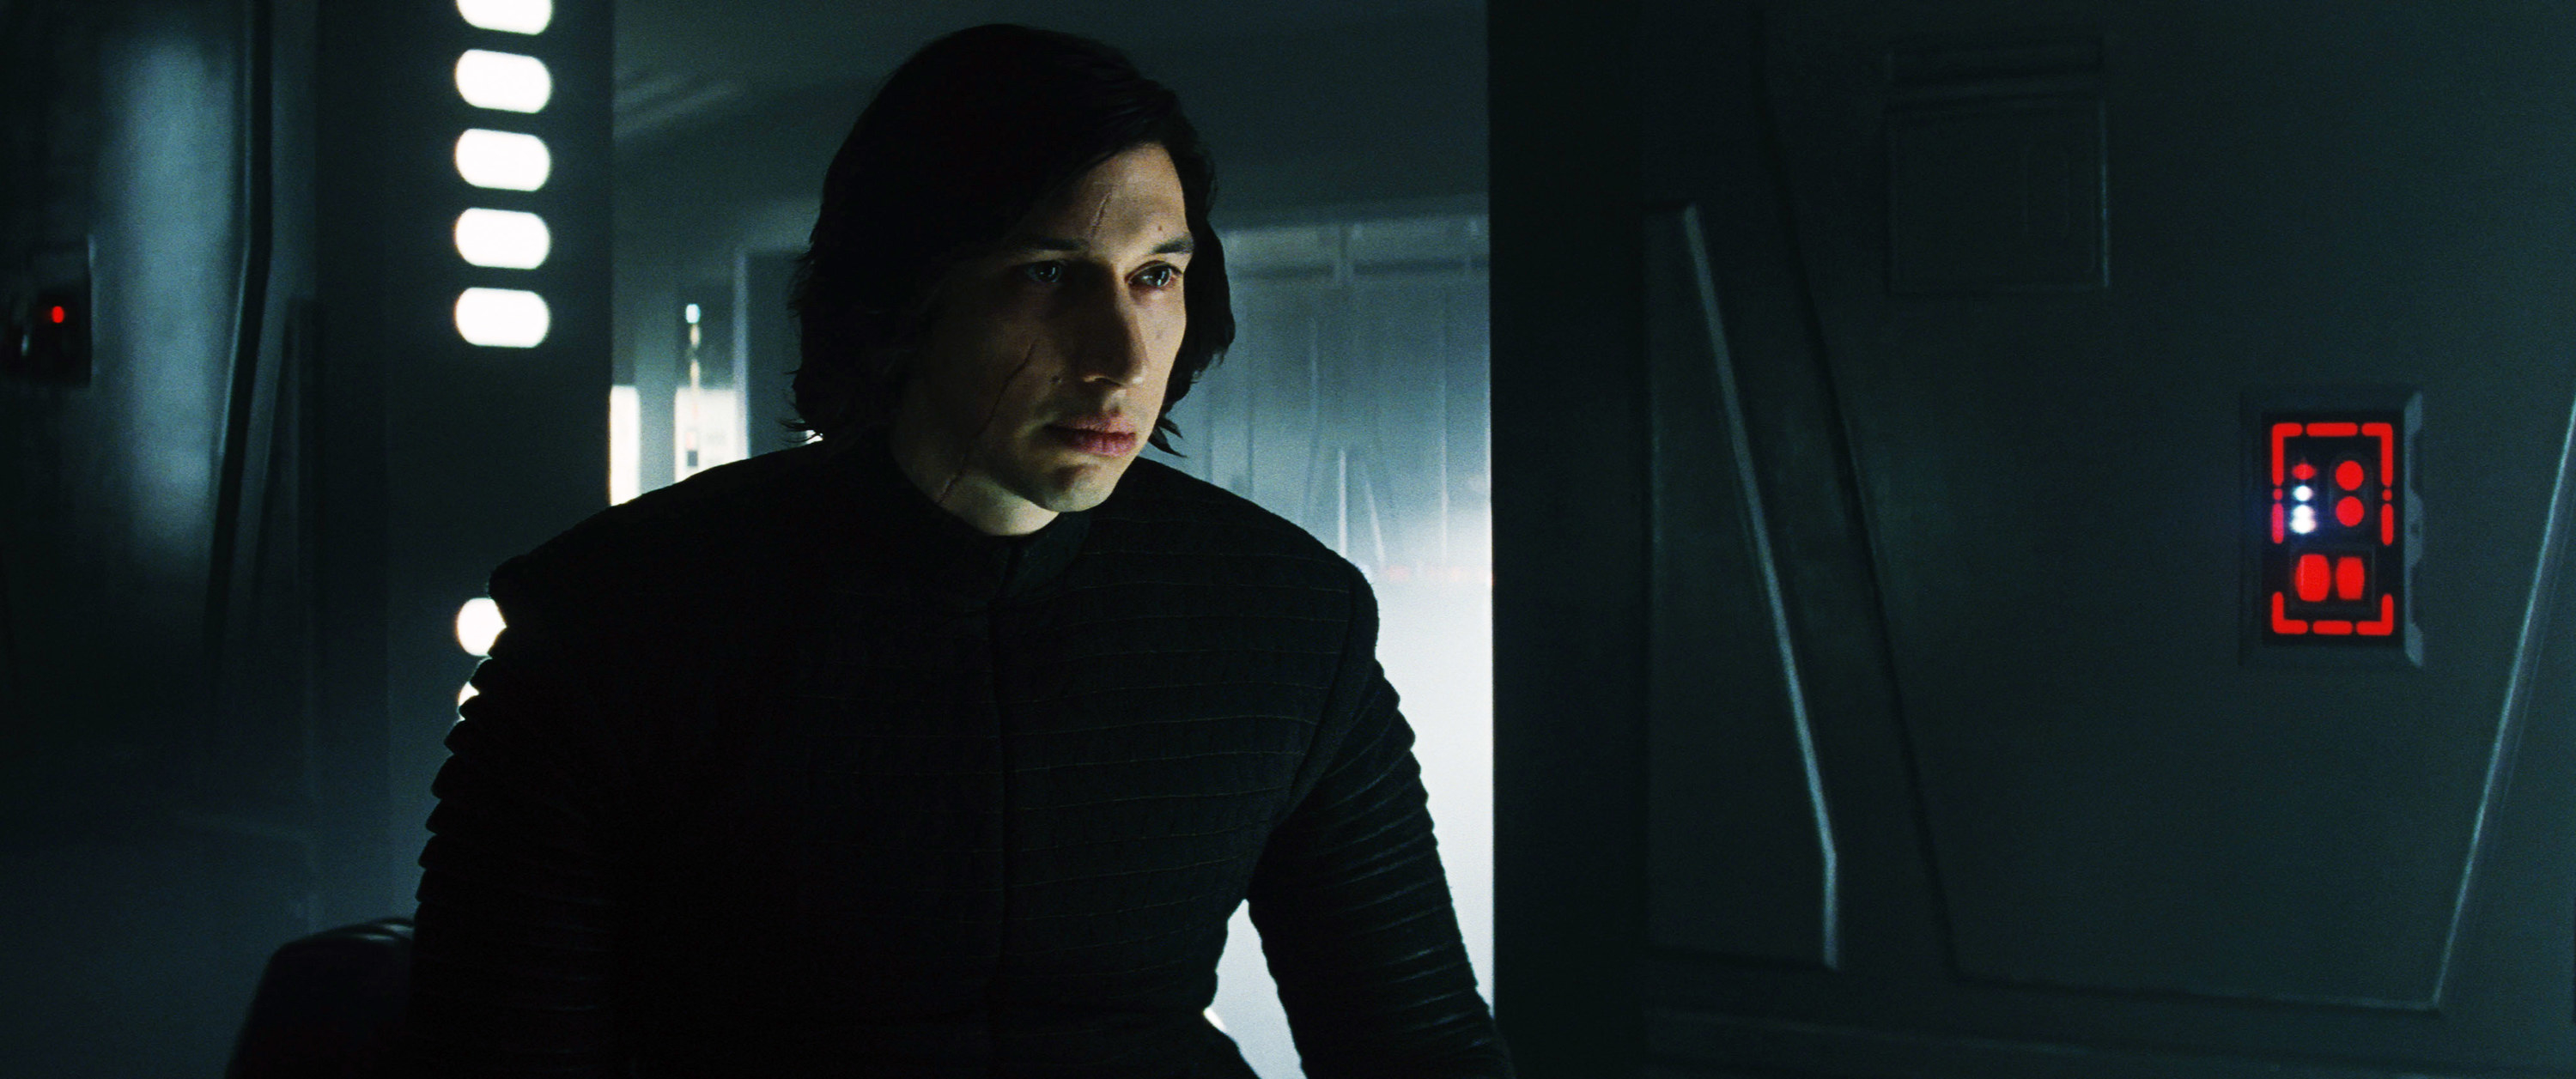 Adam Driver staring blankly into the distance